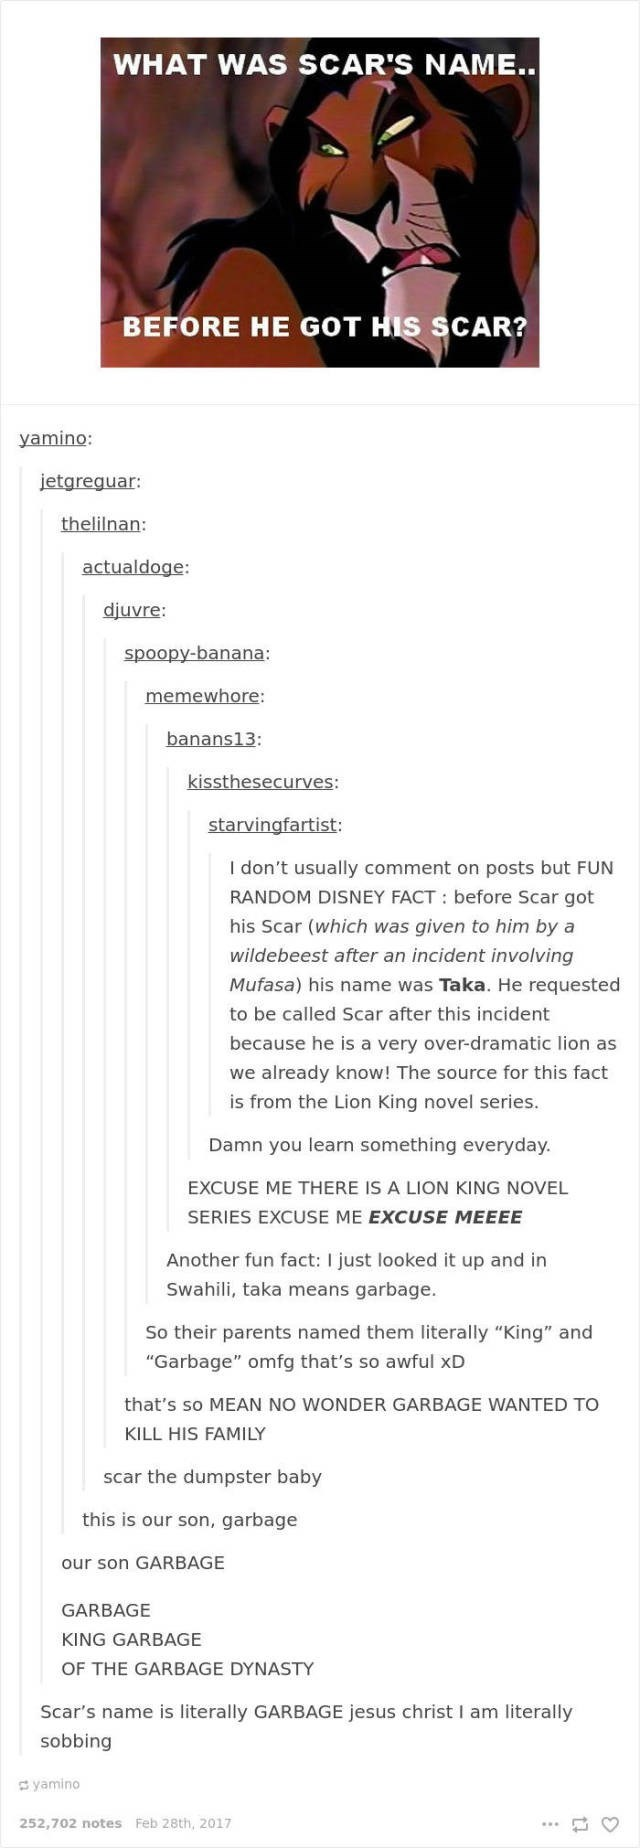 Text - WHAT WAS SCAR'S NAME.. BEFORE HE GOT HIS SCAR? yamino: jetgreguar: thelilnan: actualdoge: diuvre: spoopy-banana: memewhore: banans13: kissthesecurves: starvingfartist: I don't usually comment on posts but FUN RANDOM DISNEY FACT: before Scar got his Scar (which was given to him by a wildebeest after an incident involving Mufasa) his name was Taka. He requested to be called Scar after this incident because he is a very over-dramatic lion as we already know! The source for this fact is from